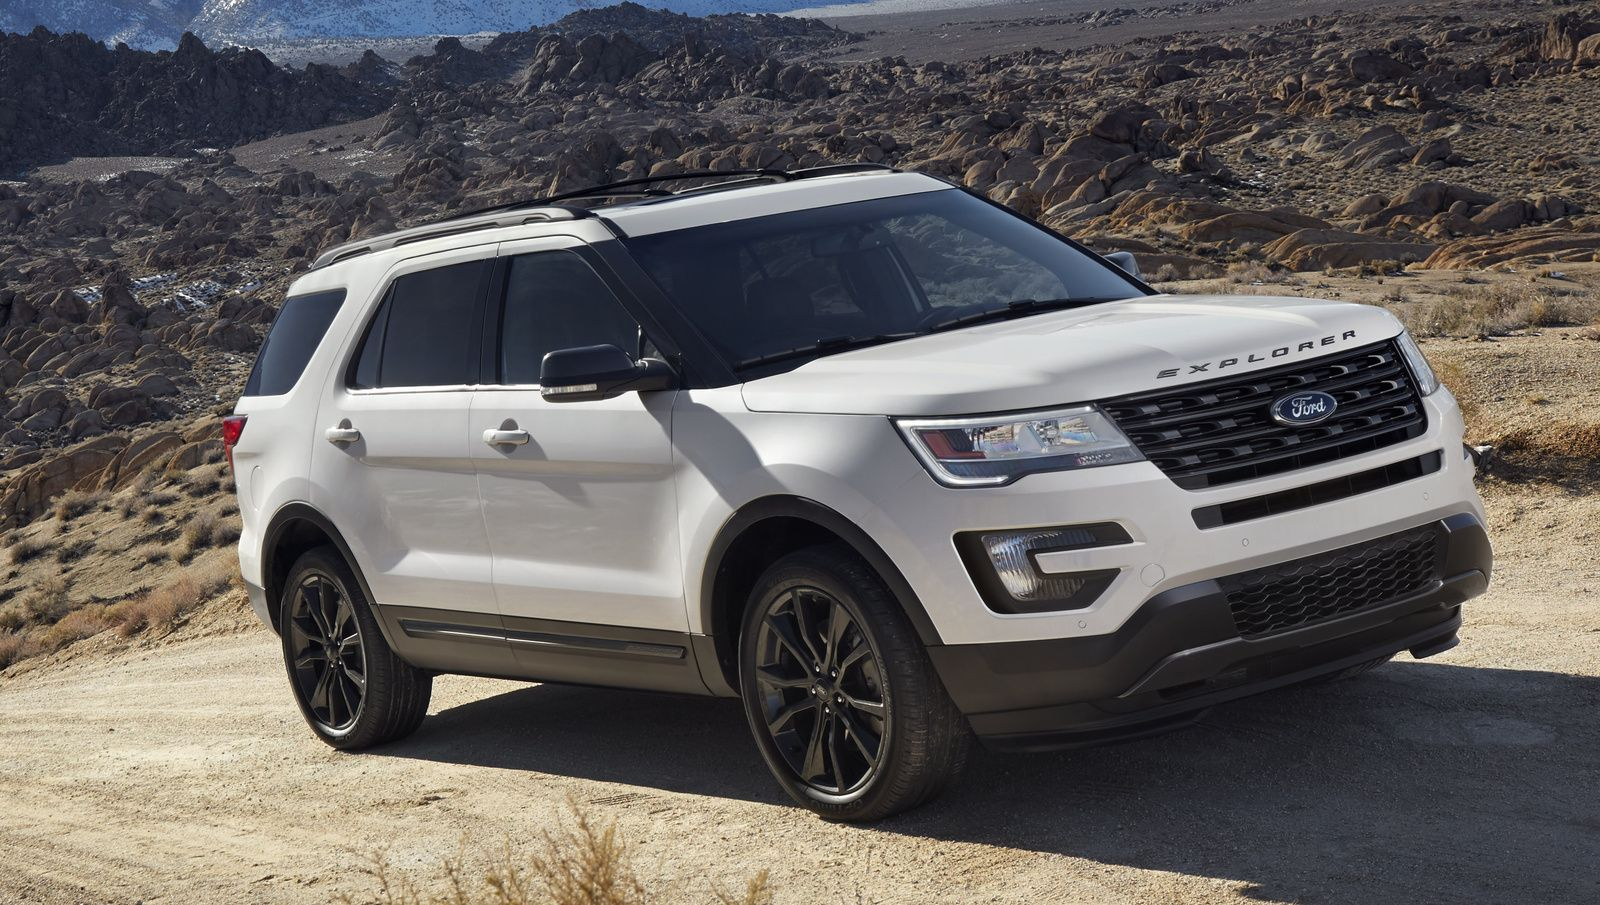 2016 2017 Ford Explorer For Sale In Your Area Cargurus Ford Explorer 2019 Ford Explorer Ford Explorer Sport